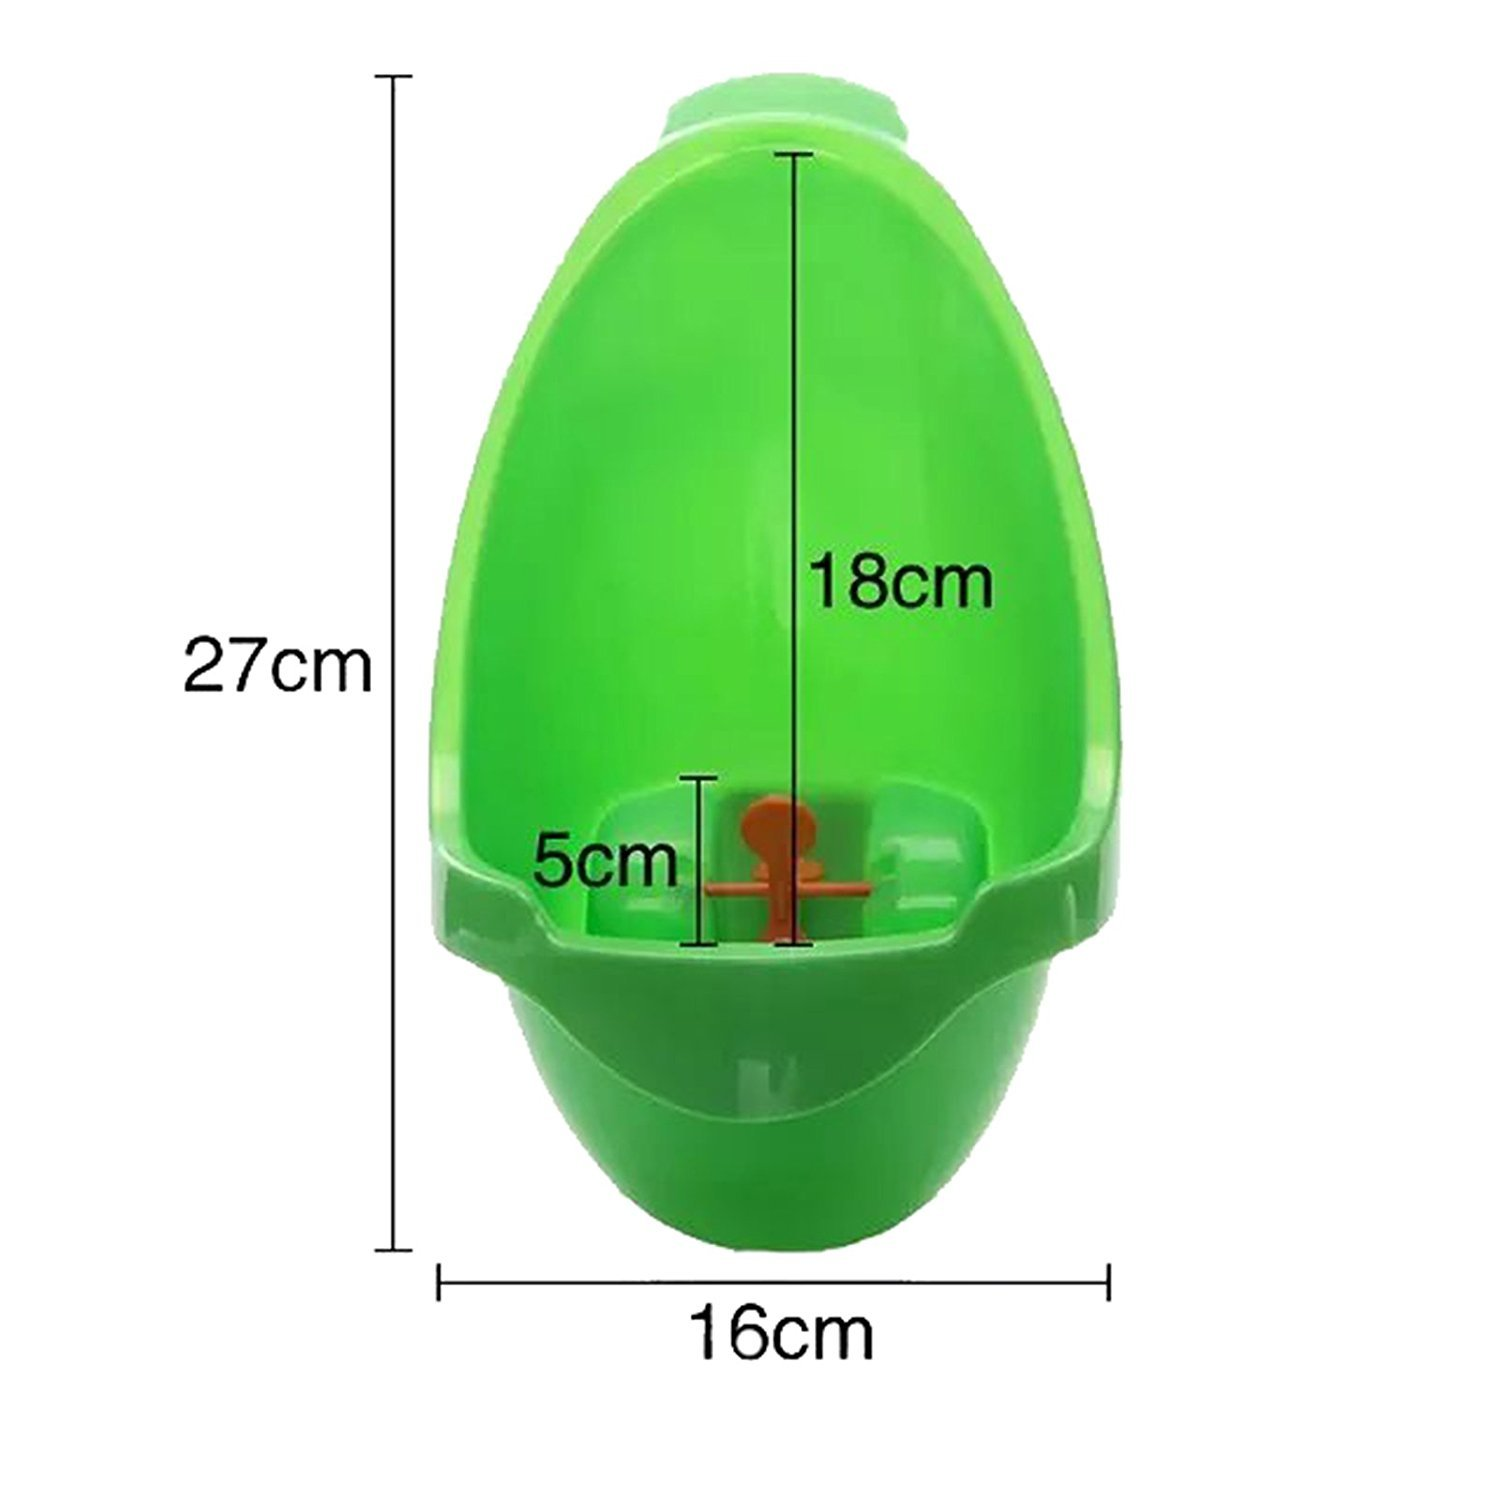 YOUTO Frog Children Potty Toilet Training Urinal for Boys Pee Trainer Bathroom - Green